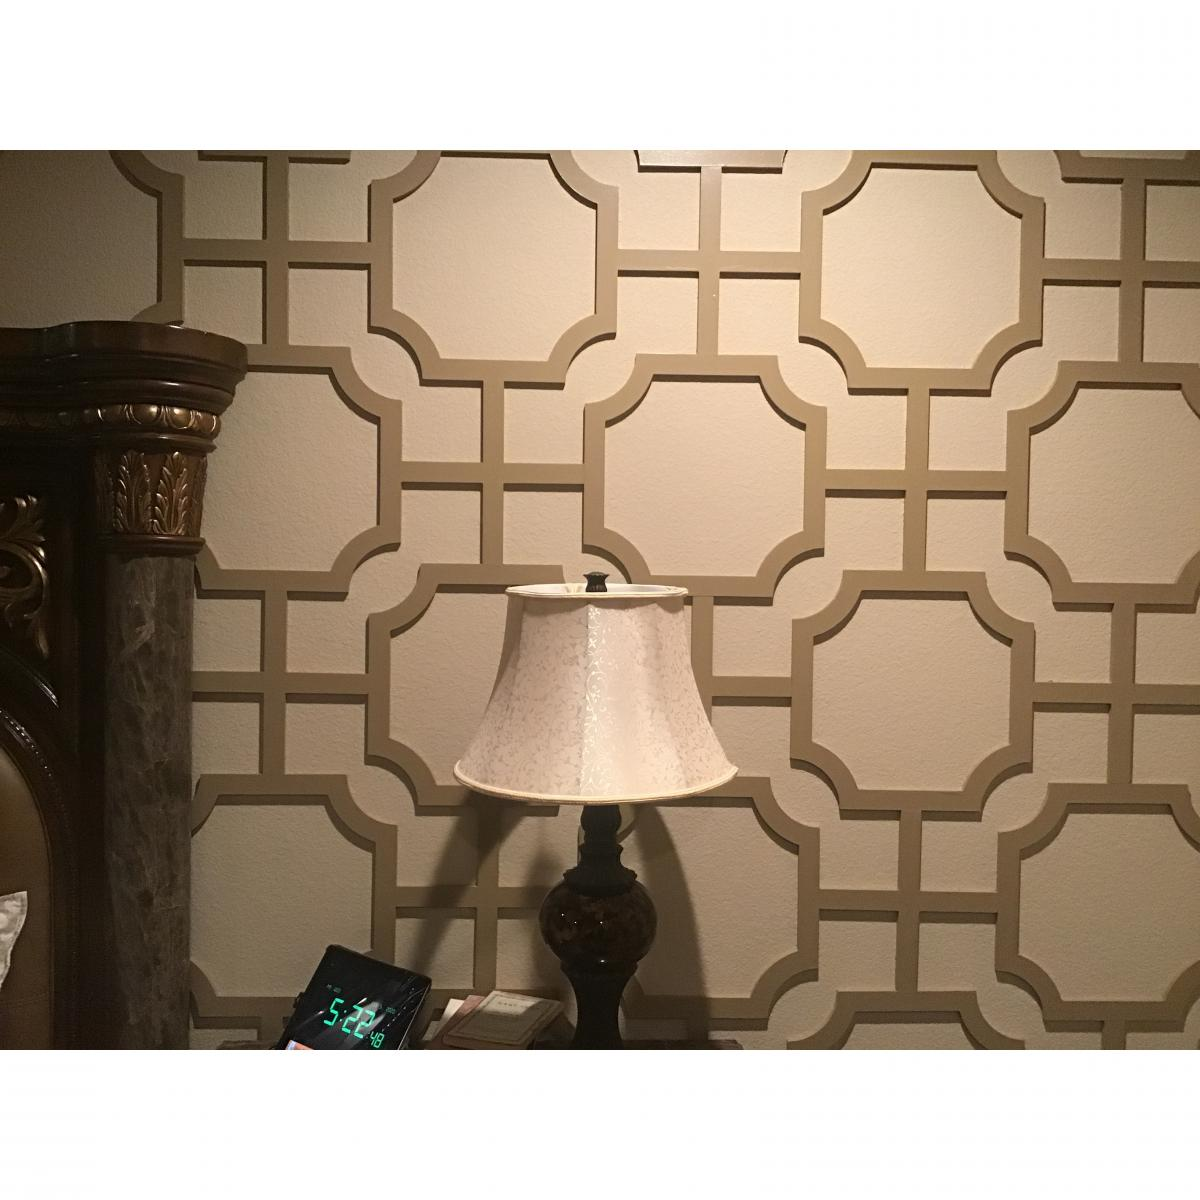 Ekena Millwork Walw16x16x0375brdmf Medium Bradley Decorative Fretwork Wood Wall Panels Wood Paint Grade